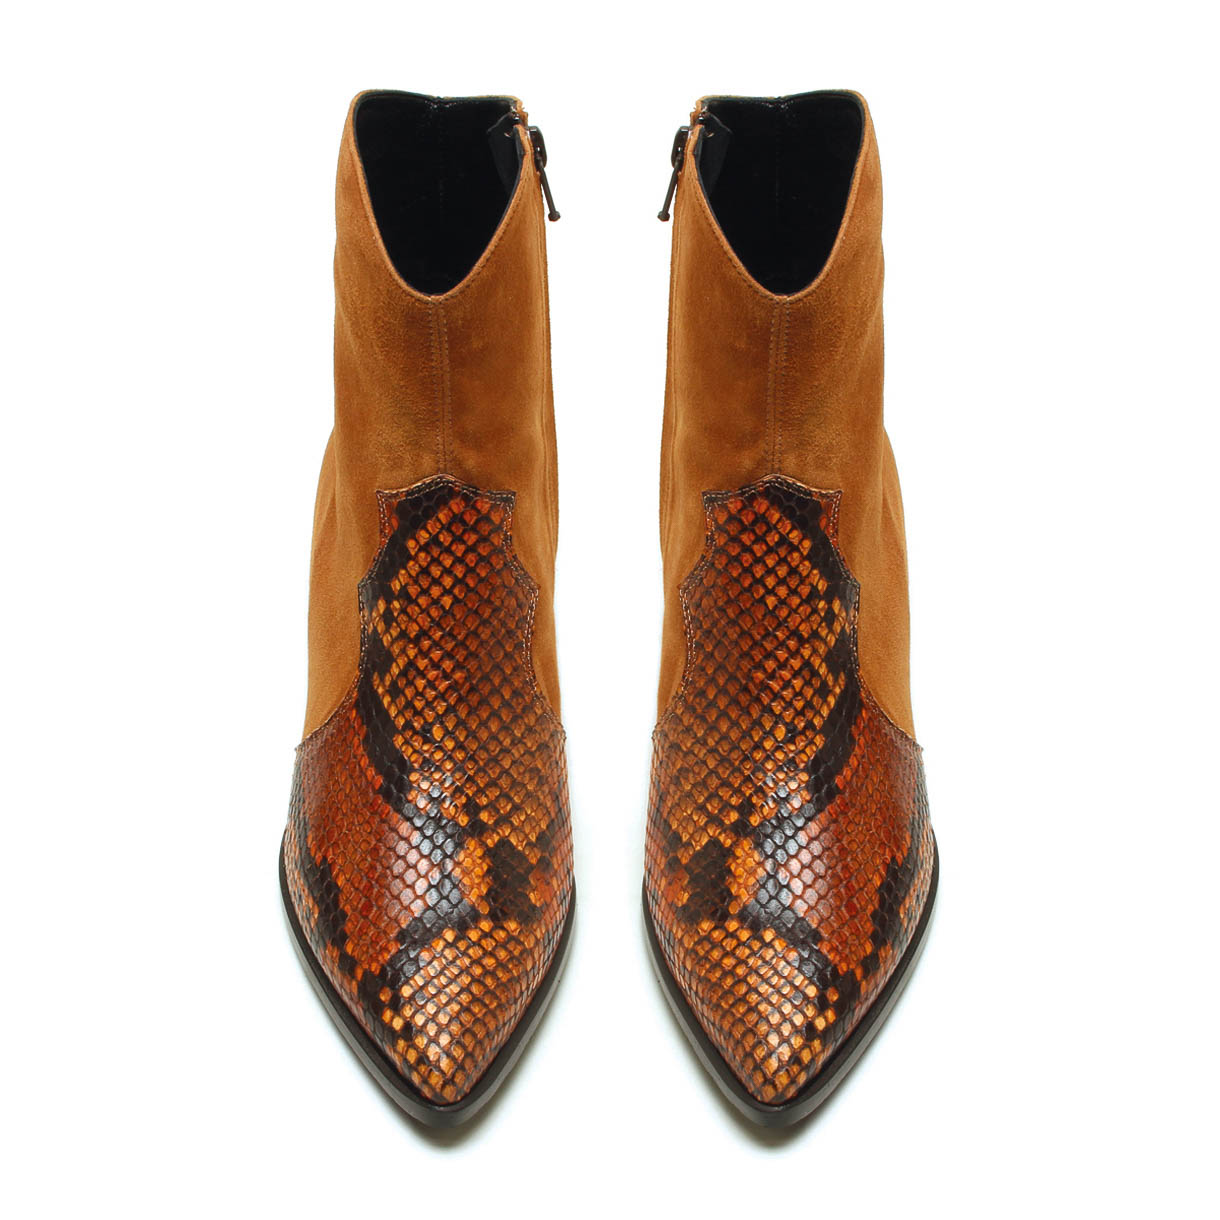 MICHELE LOPRIORE - A45025 - Cowboy suede and printed leather boots - 002